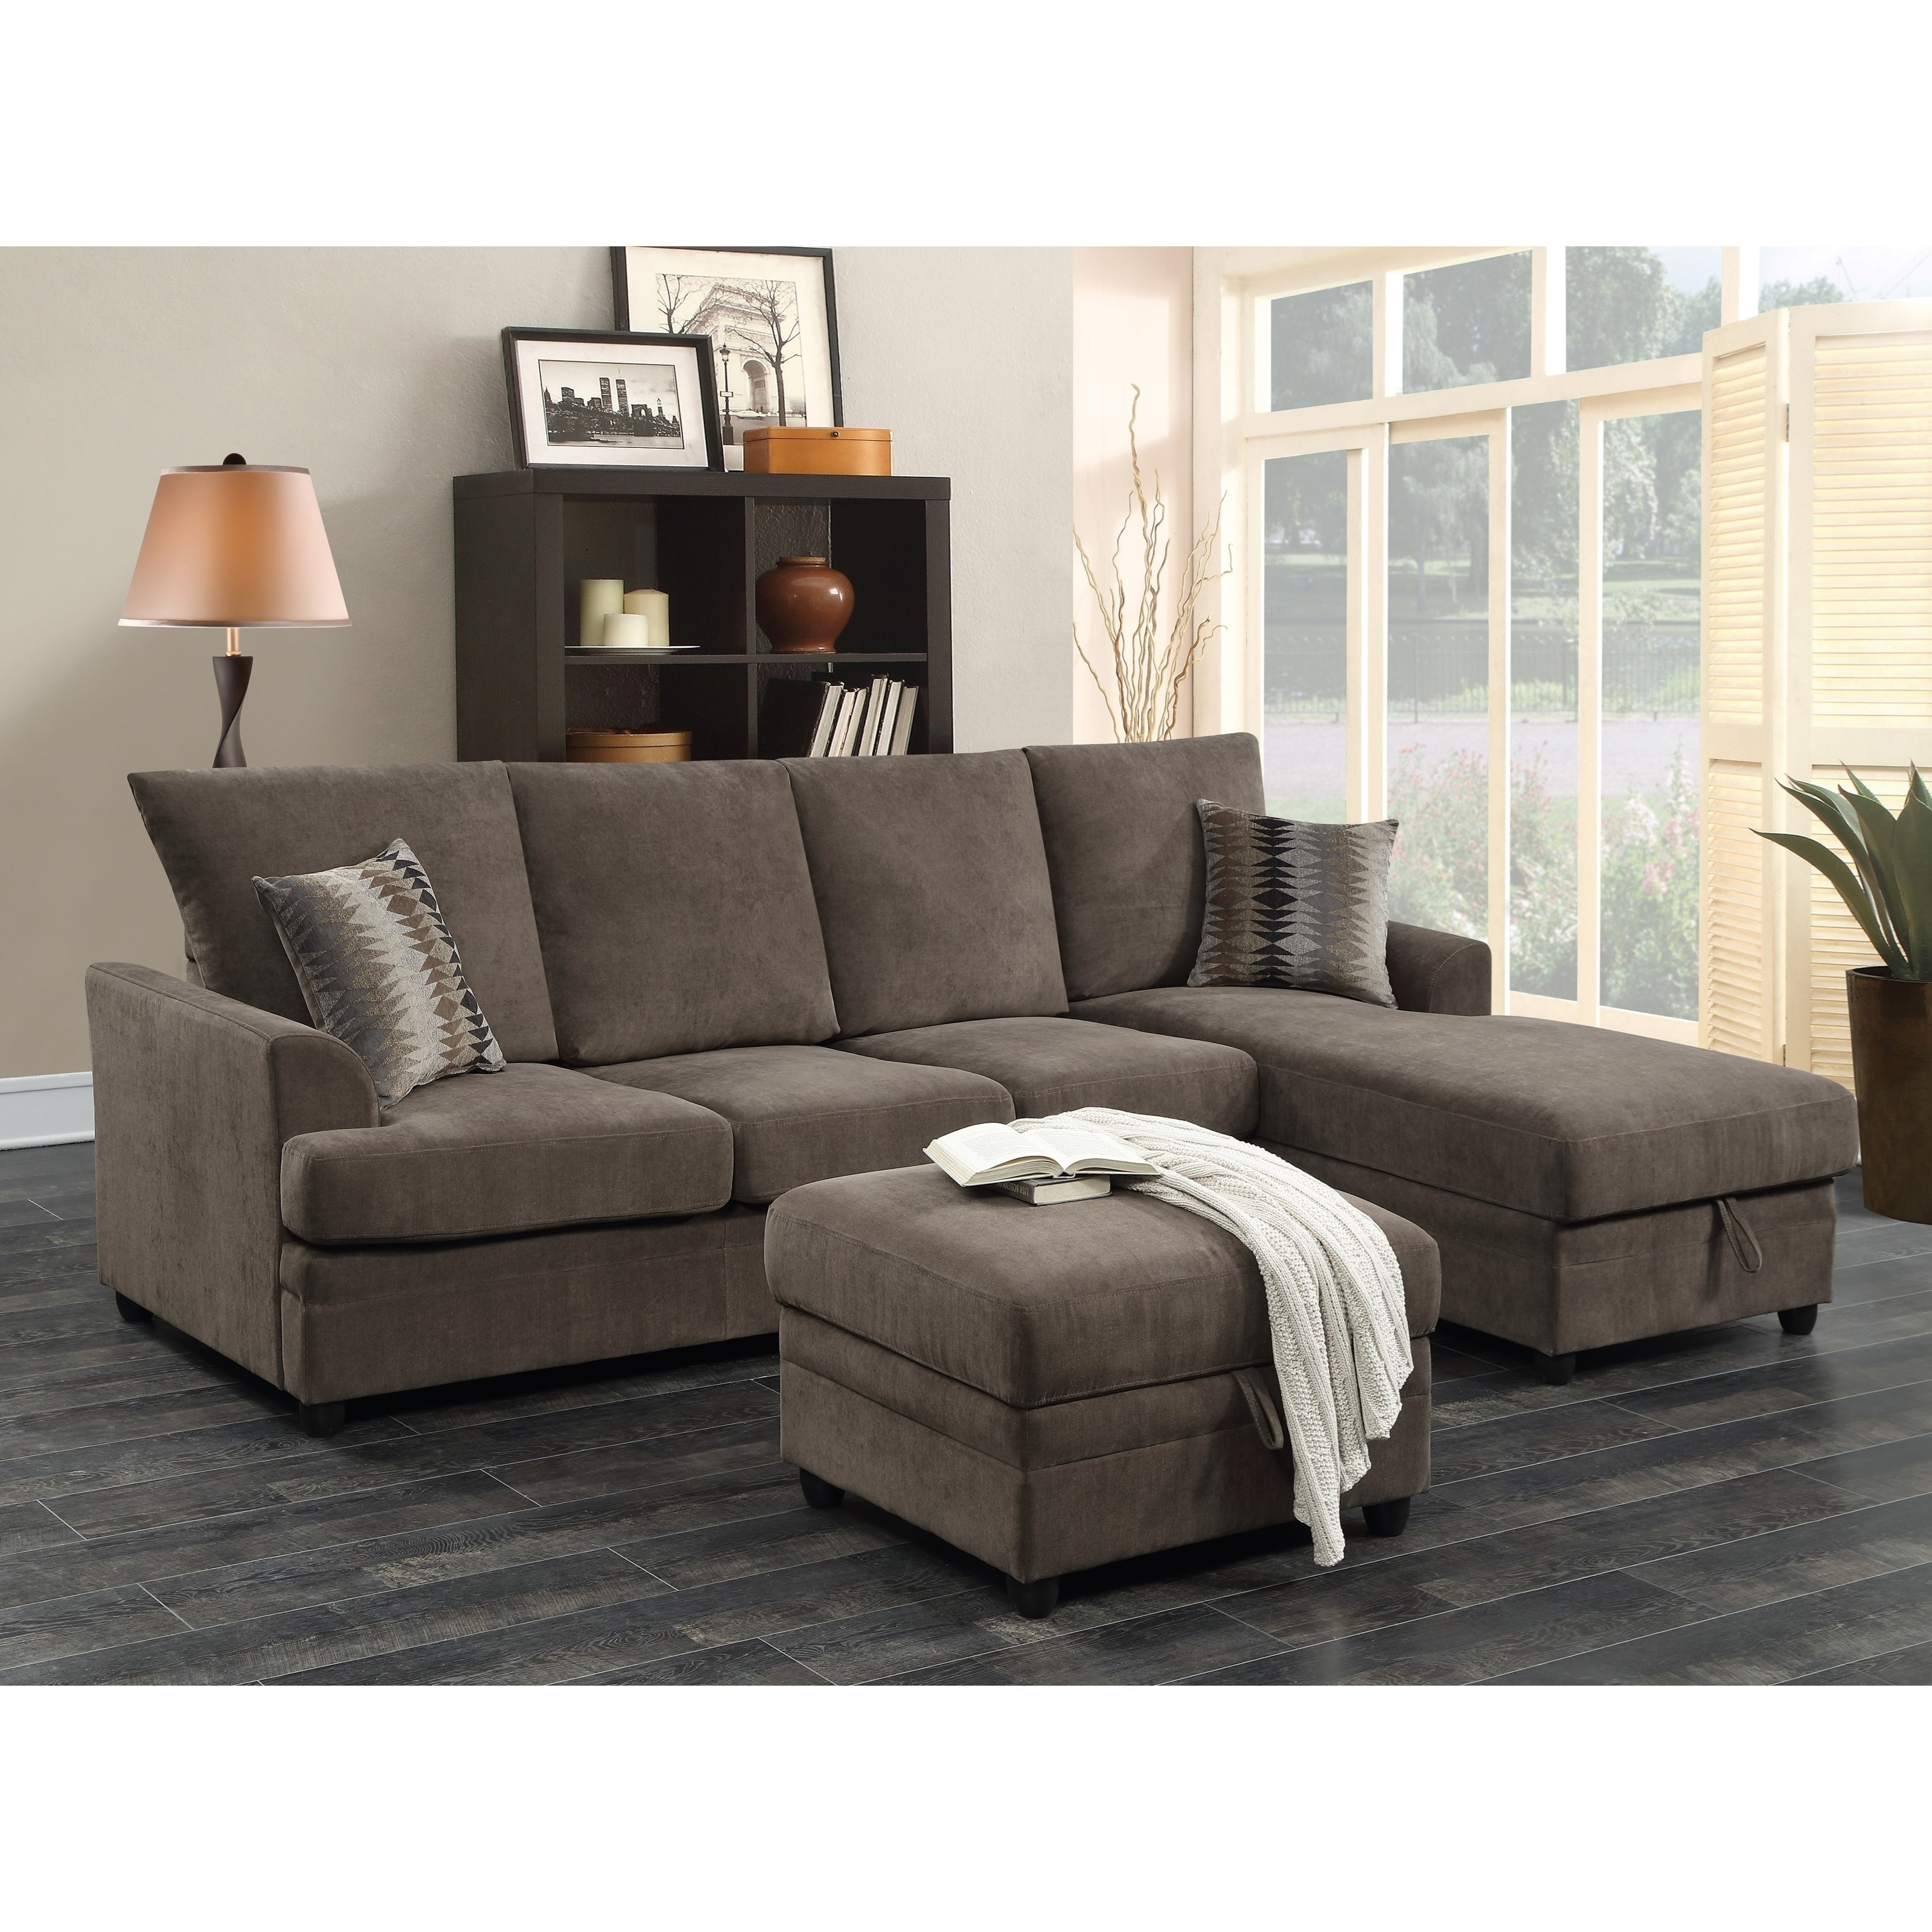 Moxie Chocolate Sectional Sofa With Sleeper | Quality Furniture At Regarding Philadelphia Sectional Sofas (Image 3 of 10)